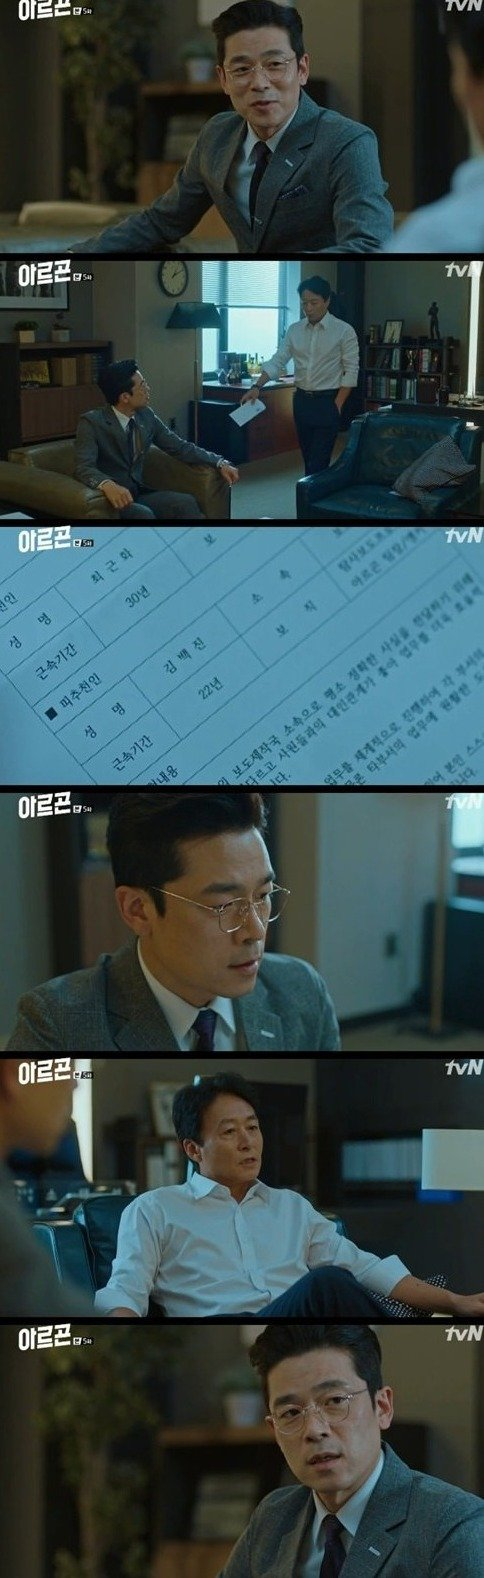 [Spoiler] Added episode 5 captures for the Korean drama 'Argon'